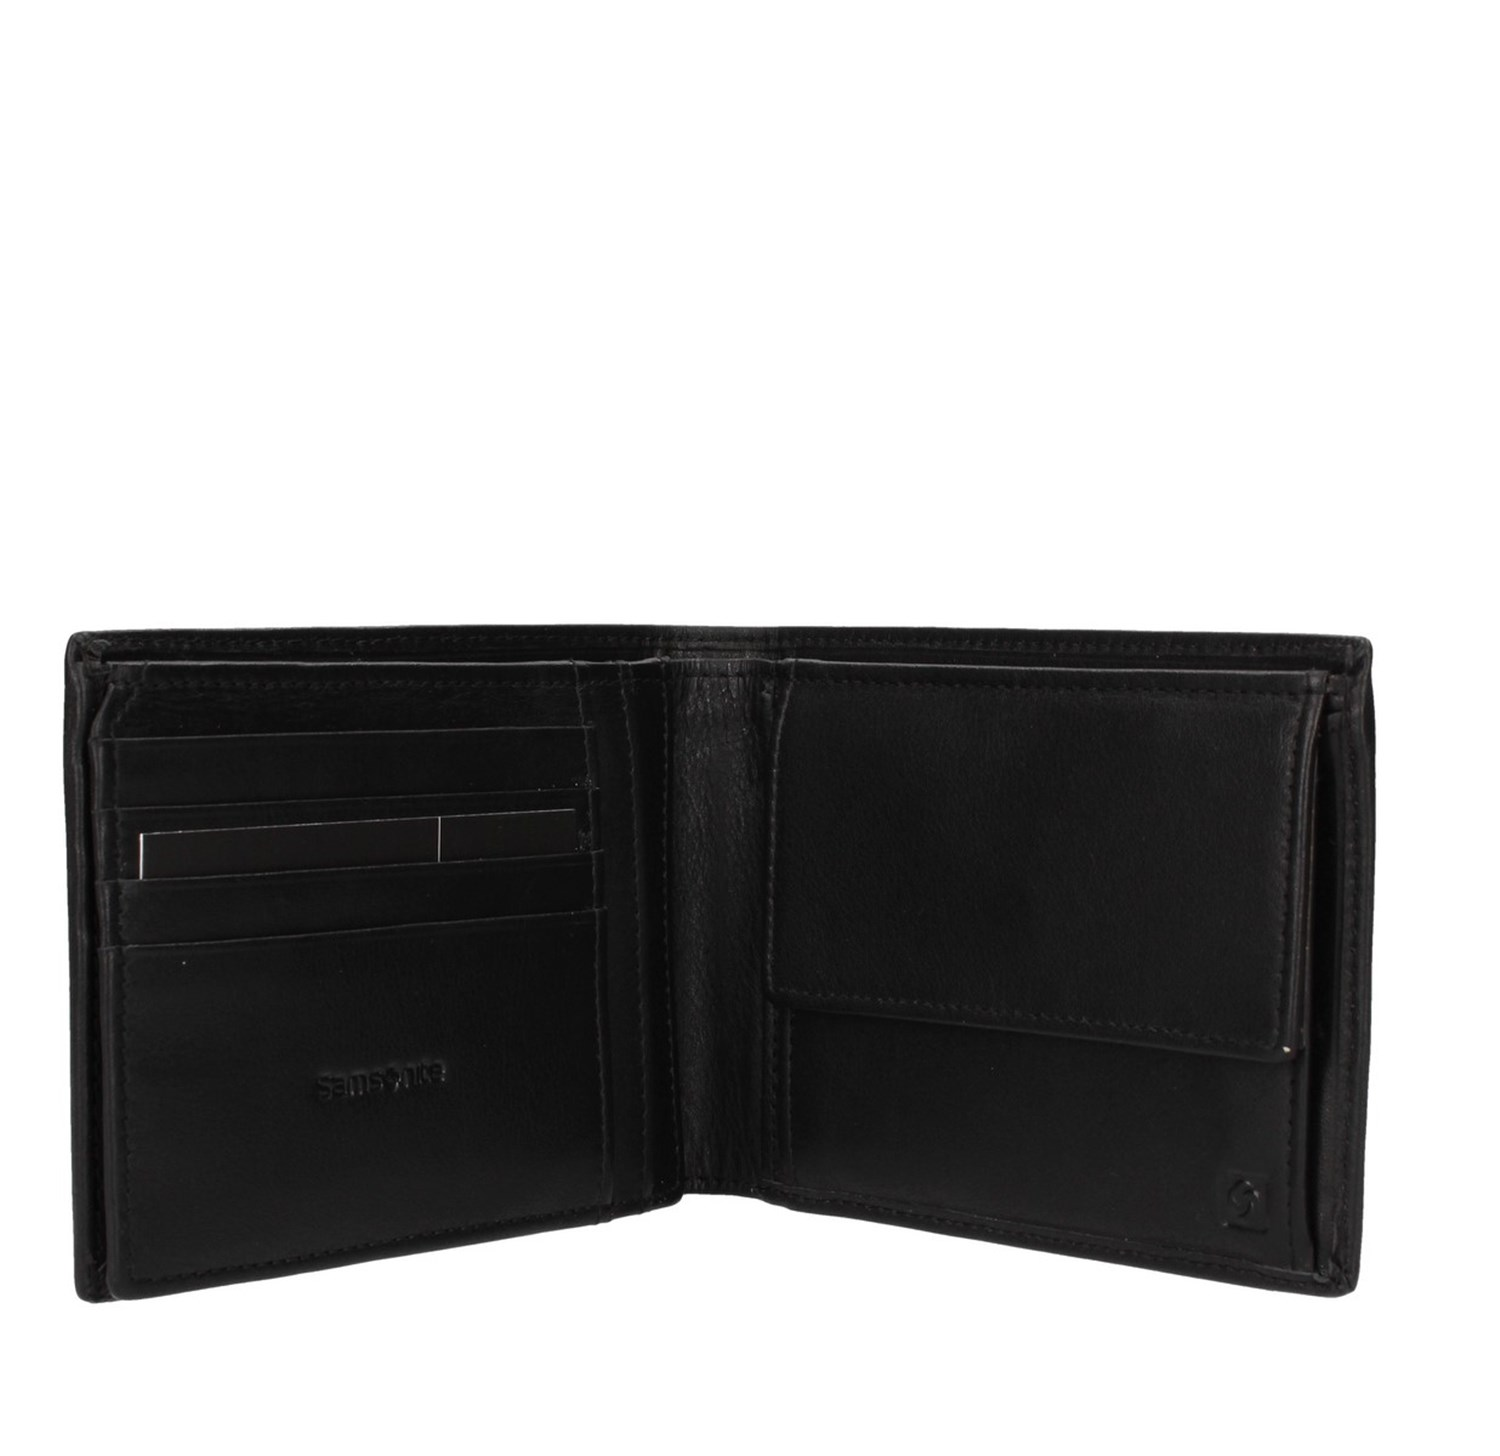 Samsonite Accessories Accessories Wallets BLACK CT9009007